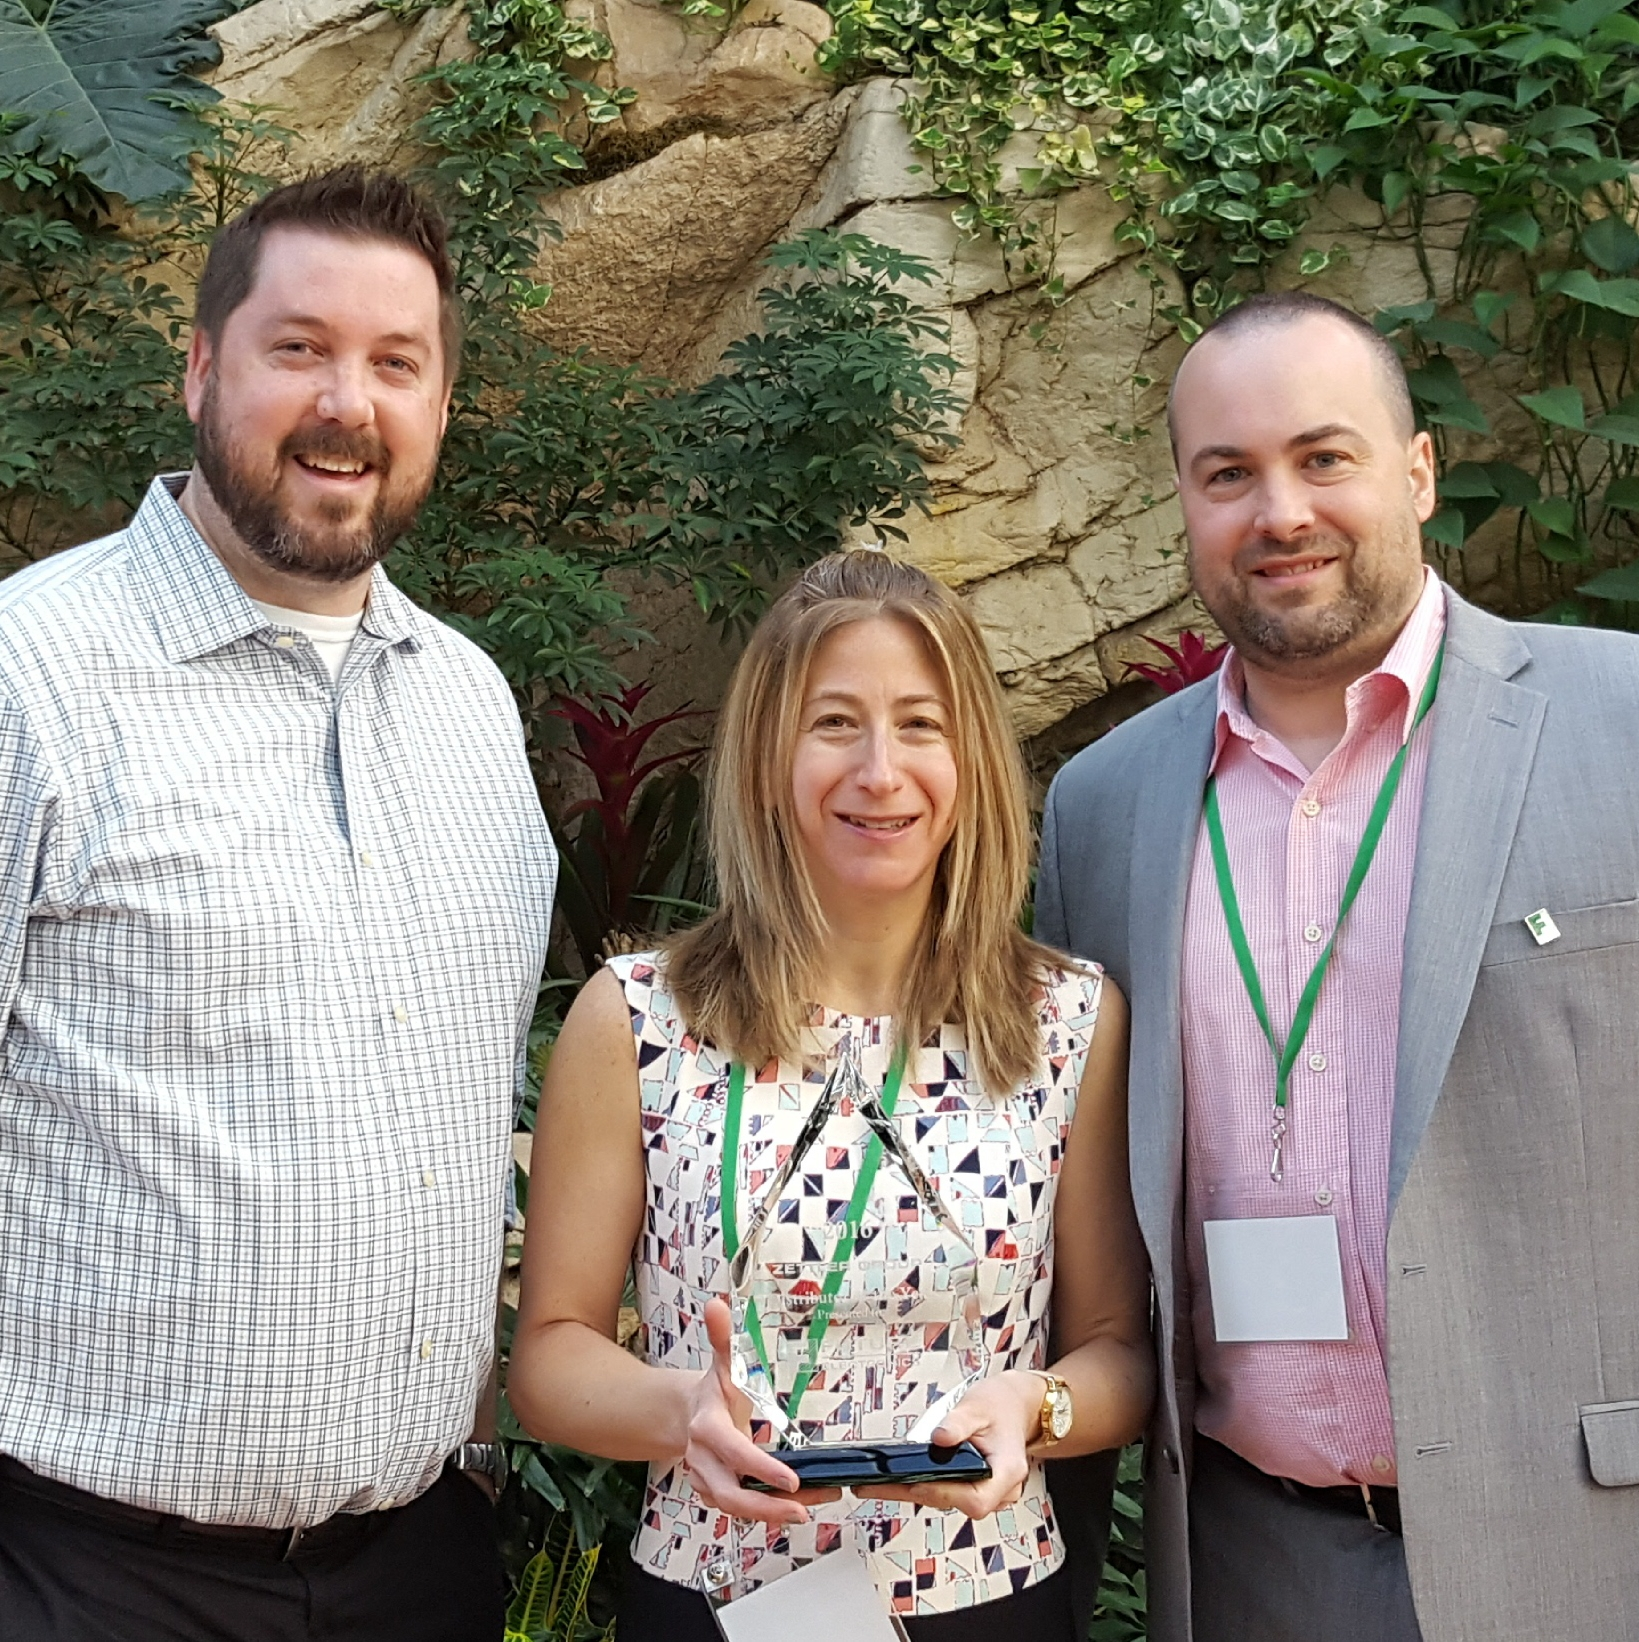 News Releases American Zettler Inc Air Conditioning Pcbsolar Circuit Boardcircuit Future Electronics Was Presented With The Groups 2016 Distributor Of Year Award At Annual Eds Summit In Las Vegas